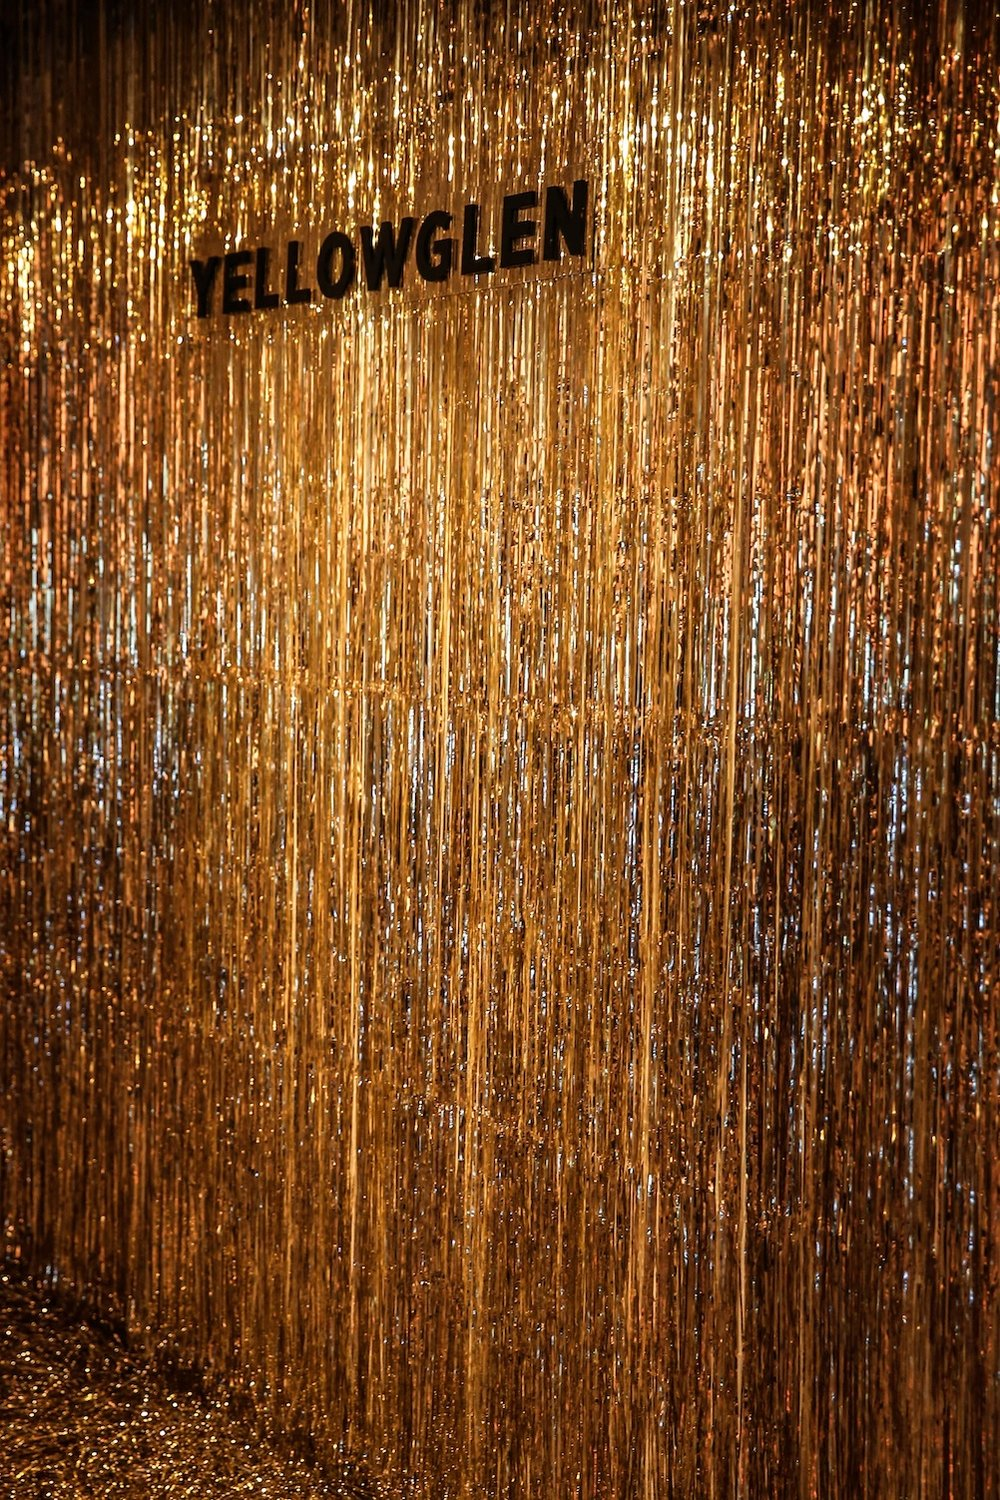 yellowglen-sparkle-launch-9.jpg